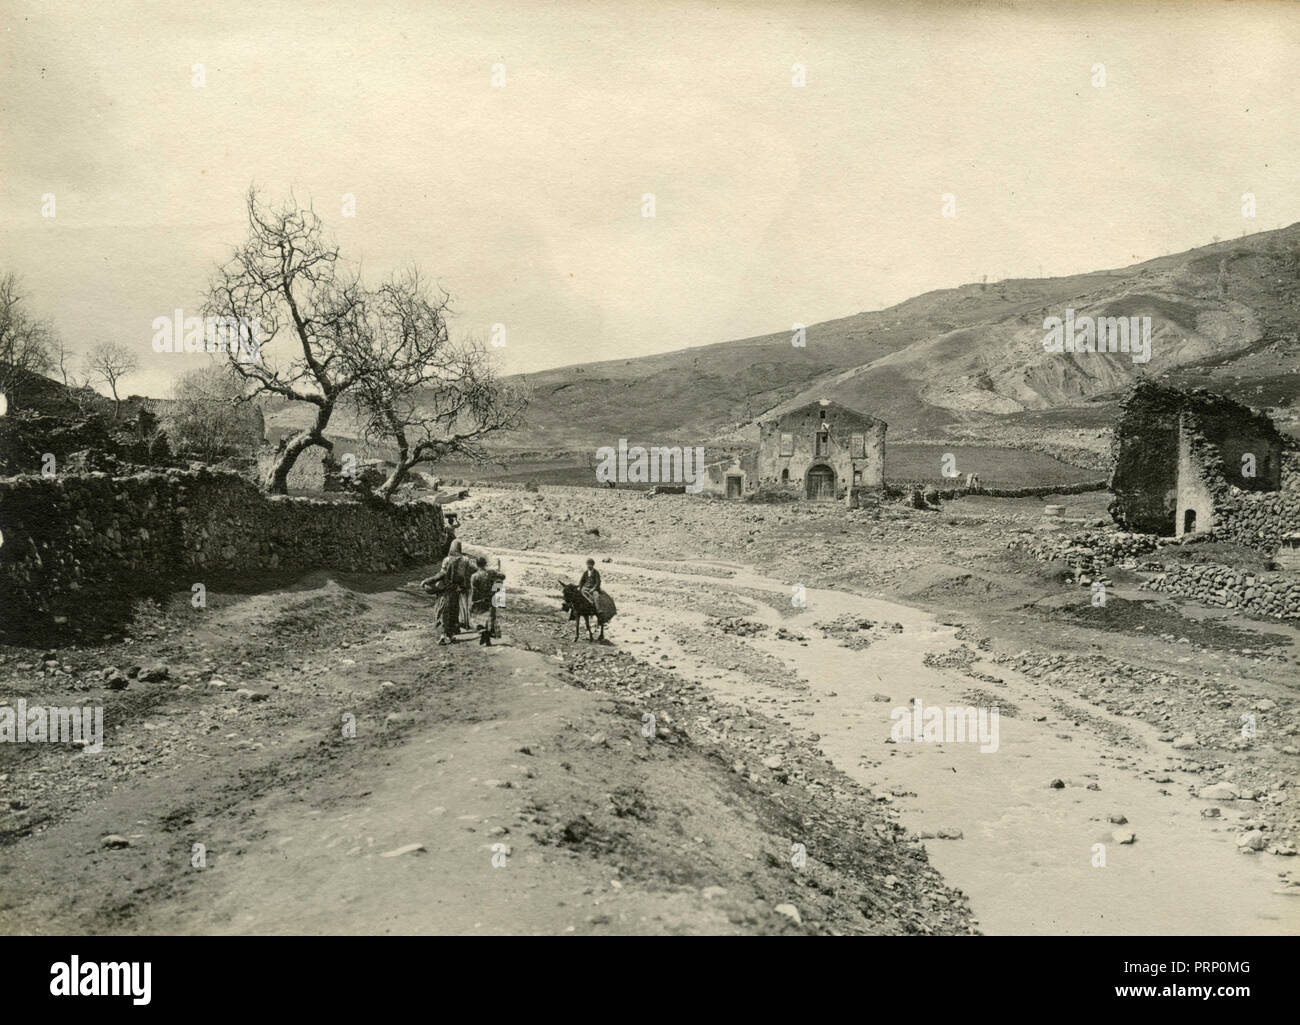 Sicilian countryside after the earthquake, Italy 1908 - Stock Image